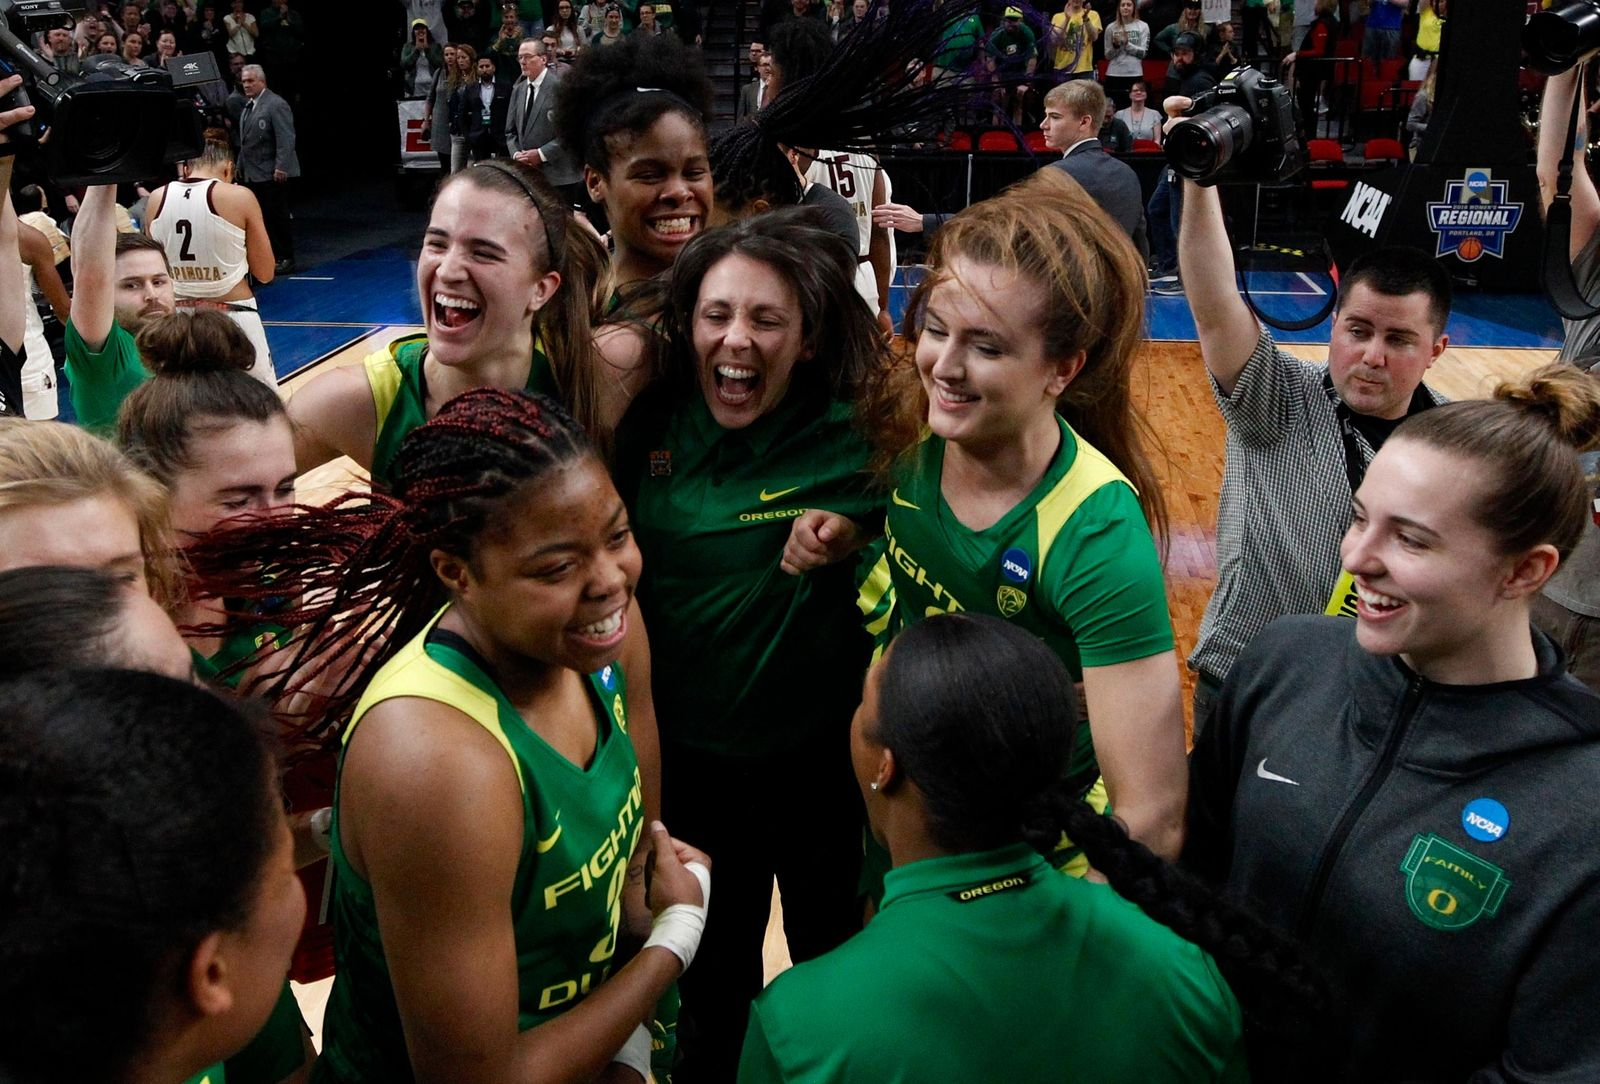 Oregon players celebrate a regional final victory over Mississippi State in the NCAA women's college basketball tournament Sunday, March 31, 2019, in Portland, Ore. (AP Photo/Steve Dipaola)